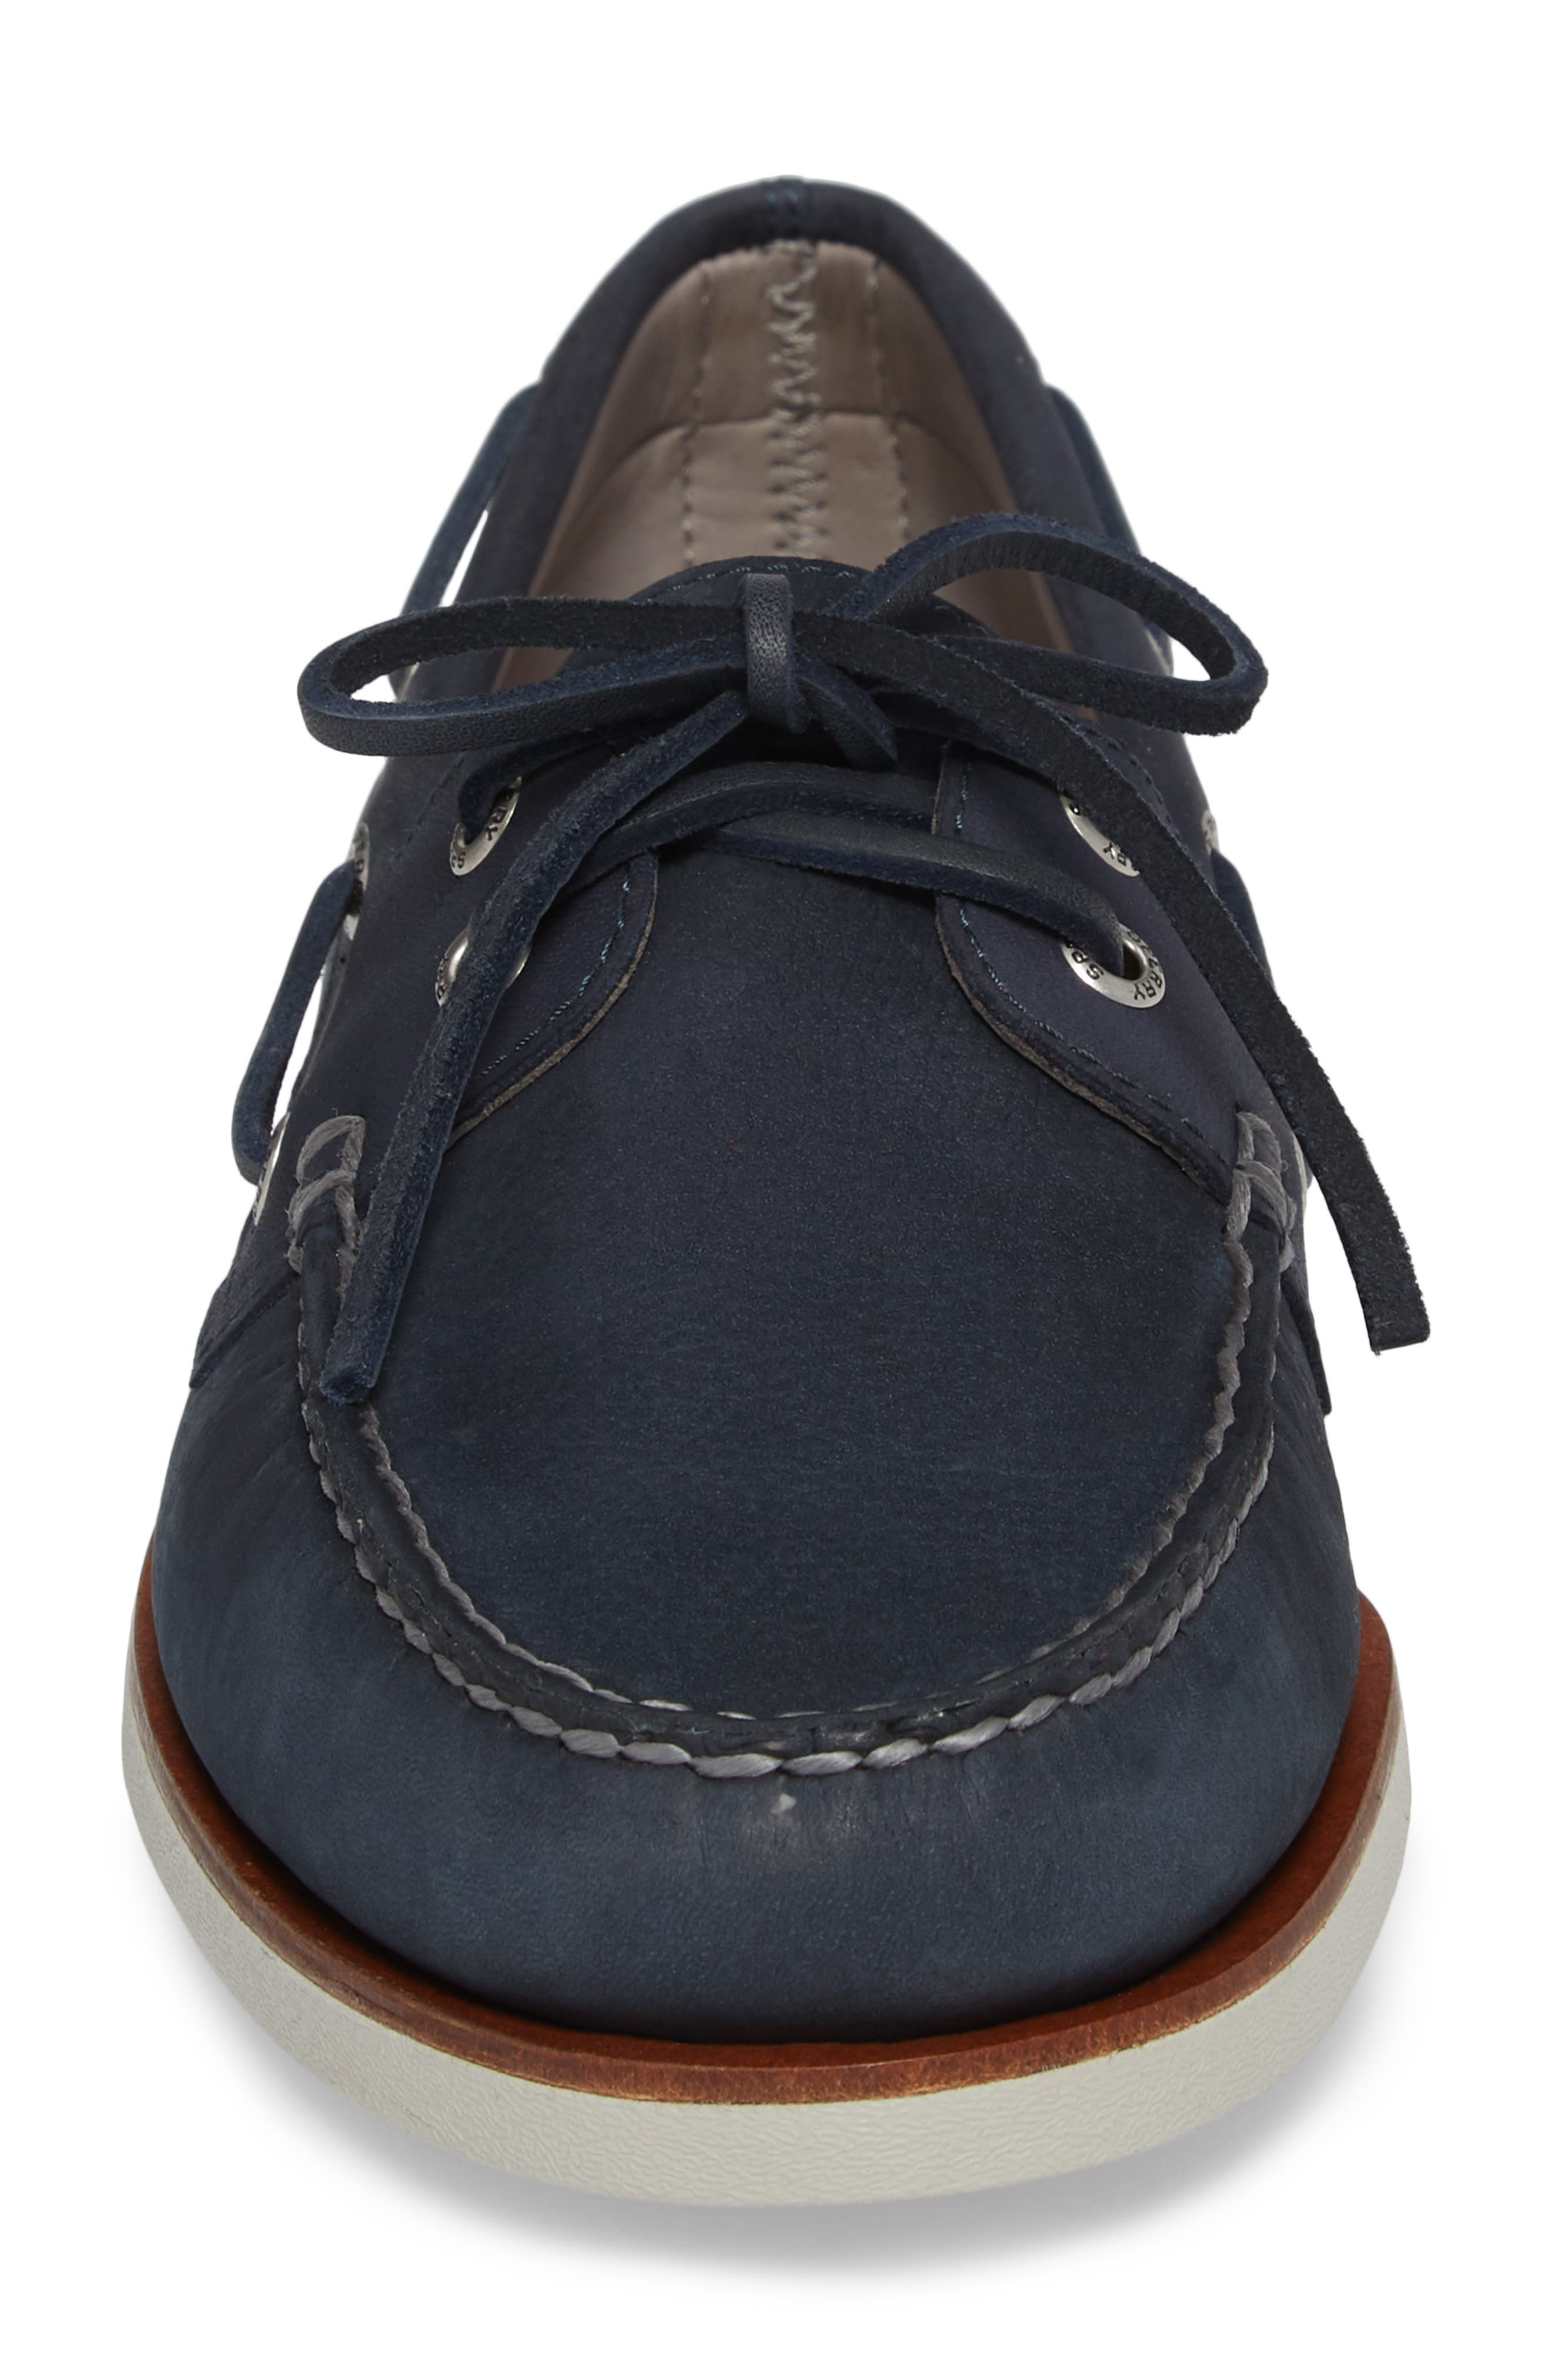 'Gold Cup - Authentic Original' Boat Shoe,                             Alternate thumbnail 4, color,                             BLUE/ NAVY LEATHER